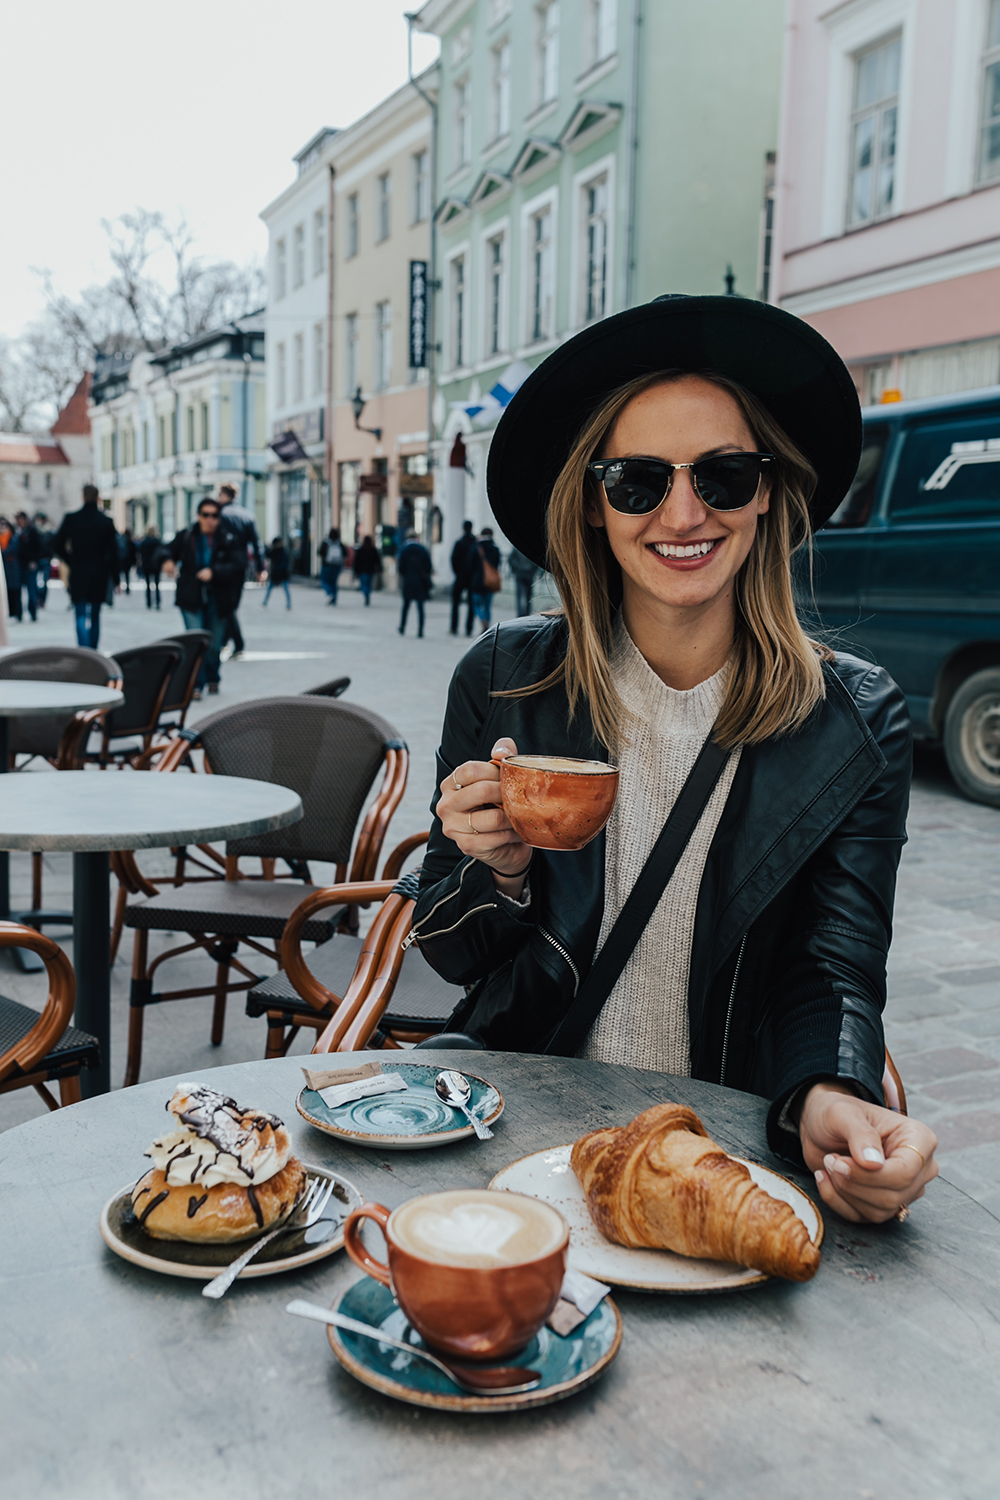 livvyland-blog-olivia-watson-fashion-travel-blogger-princess-cruises-scandinavia-northern-europe-what-to-do-wear-tallinn-estonia-4